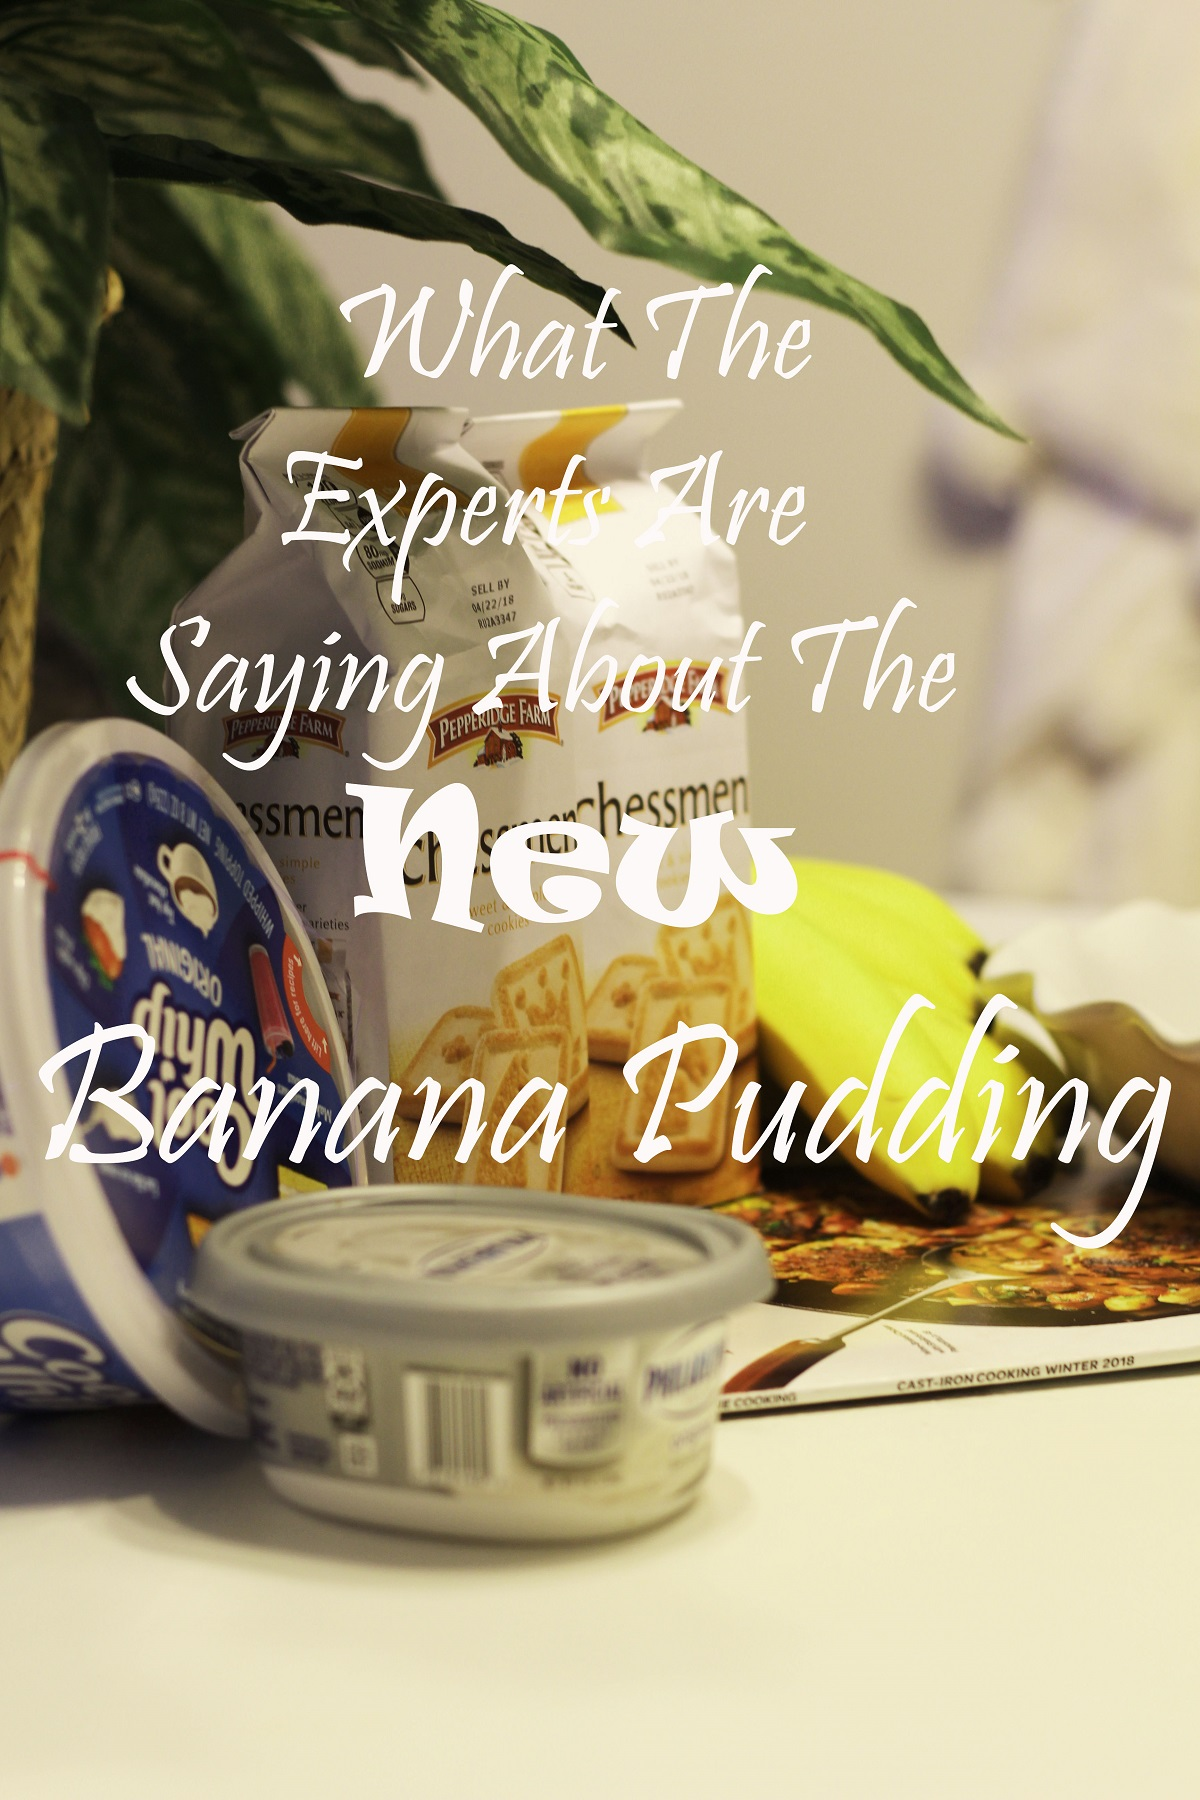 What Experts Are Saying About The New Banana Pudding….